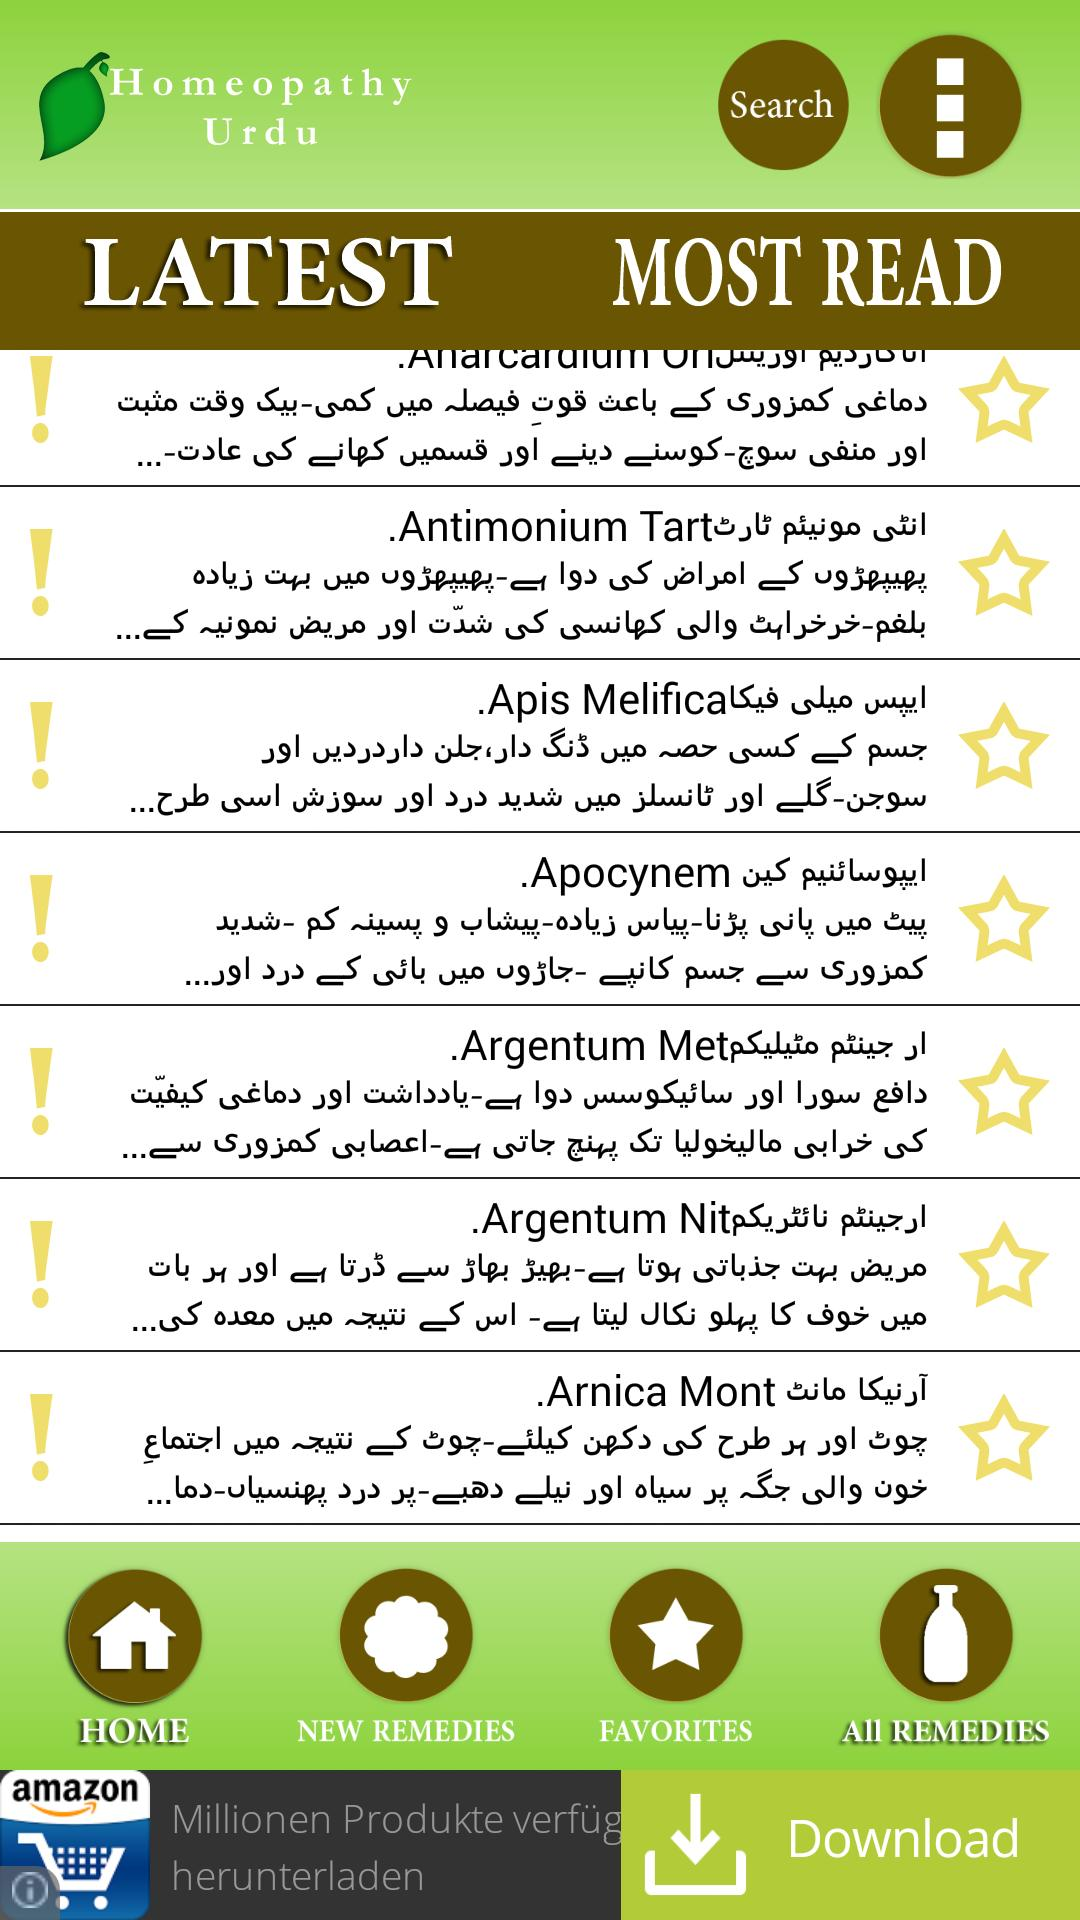 Homeopathy Medicine Urdu for Android - APK Download